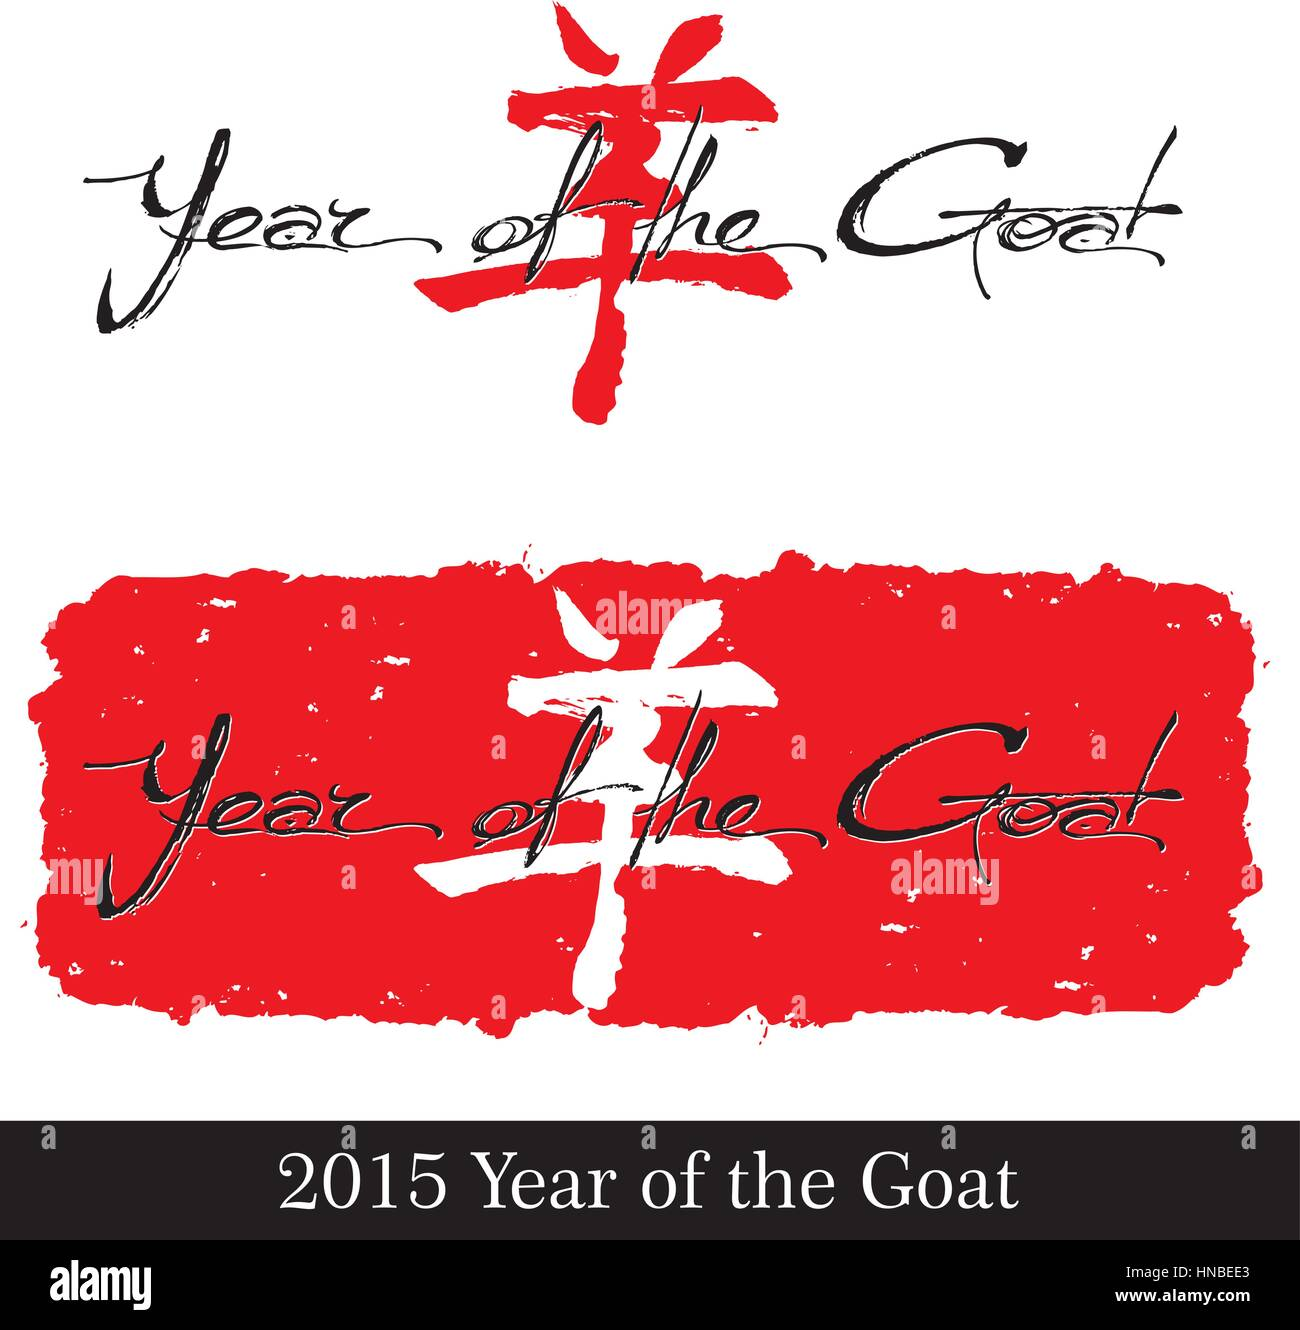 Vector illustration of a text writing 'Year of the Goat ' against a calligraphically drawn Chinese logogram - Stock Image